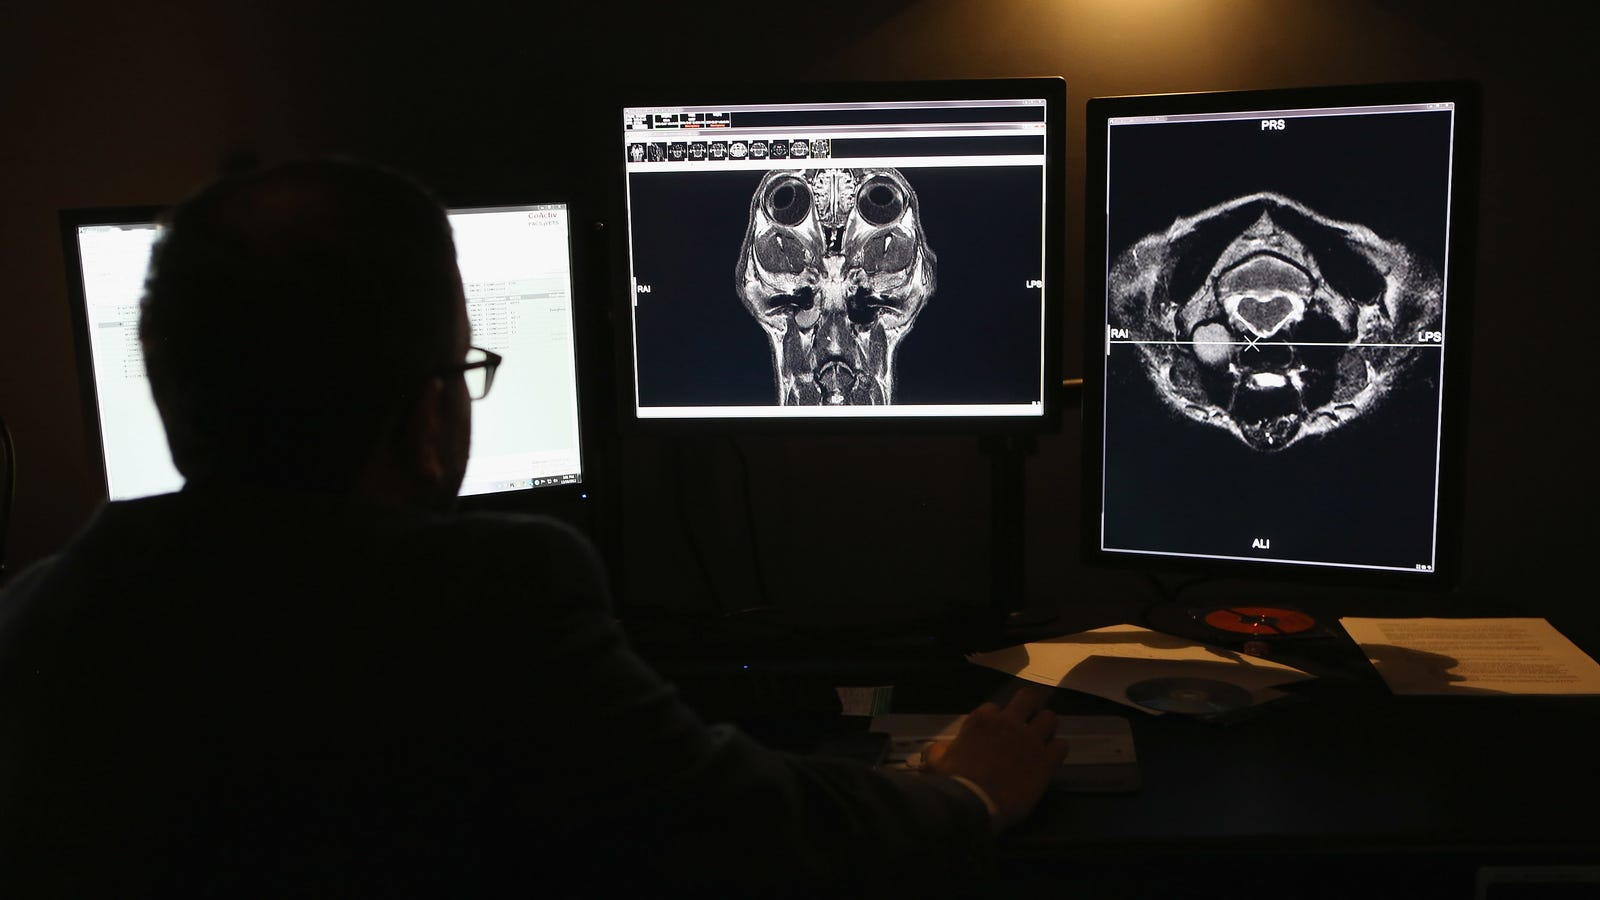 Anyone Can Look at Millions of Americans' Medical Images and Data, Report Finds